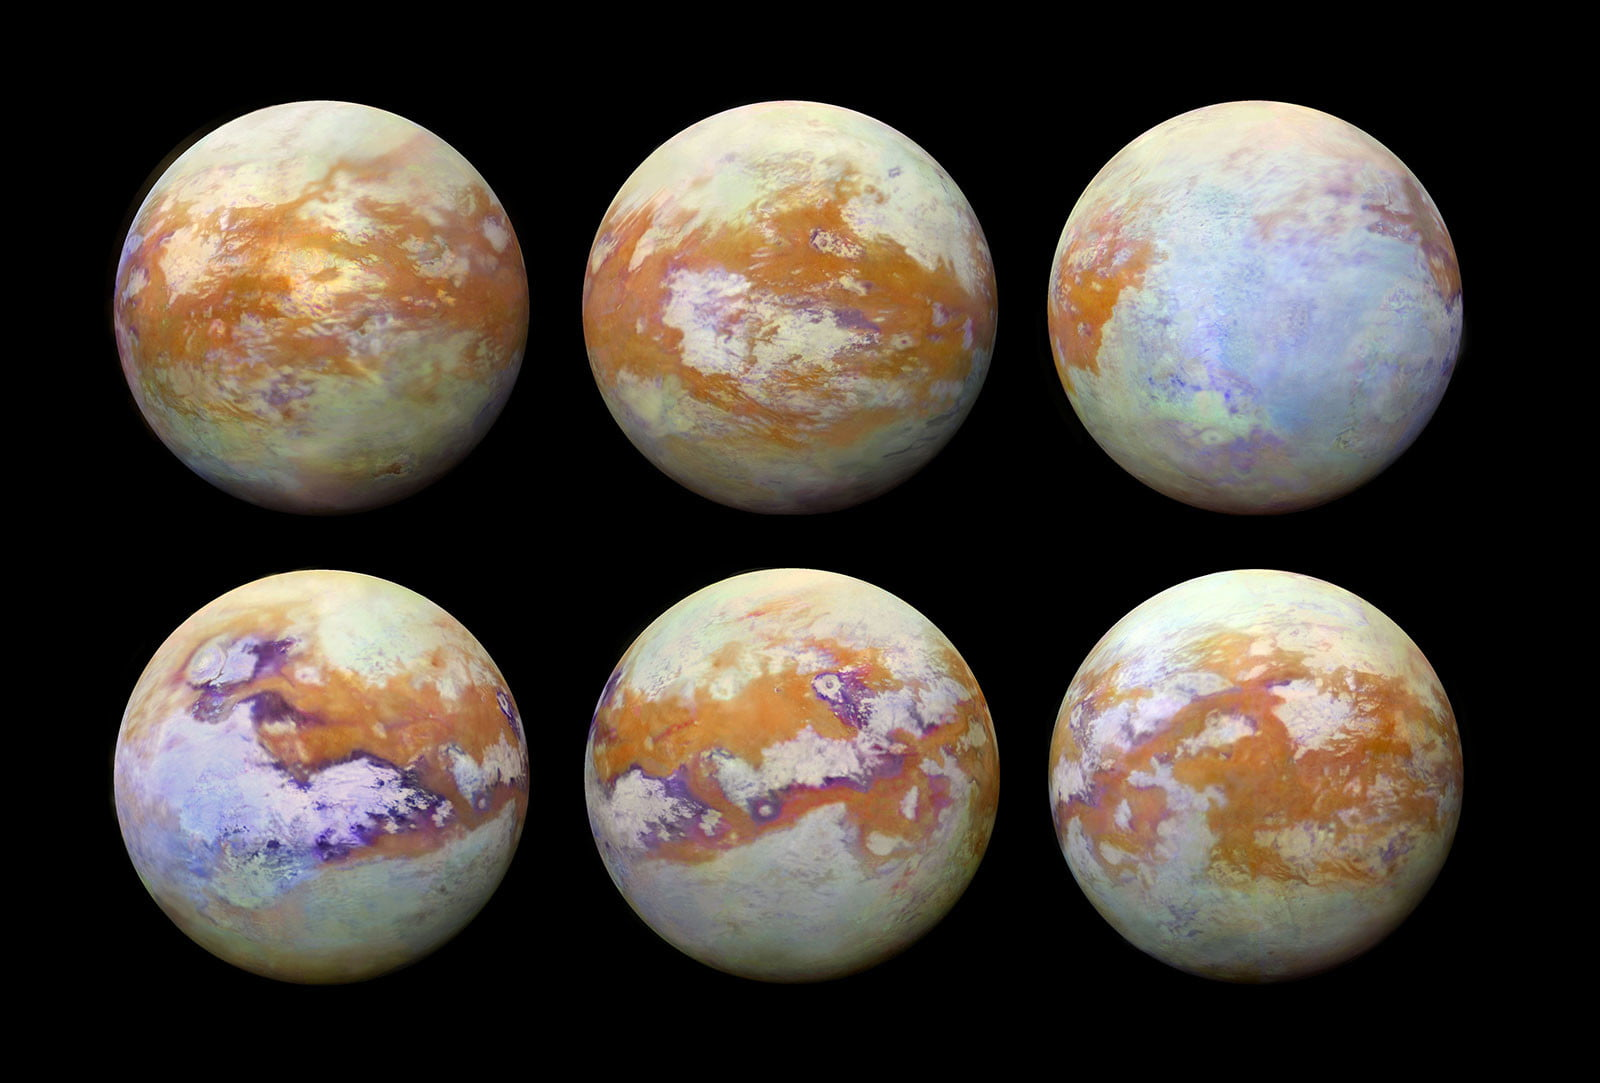 These six infrared images of Saturn's moon Titan represent some of the clearest, most seamless-looking global views of the icy moon's surface produced so far. The views were created using 13 years of data acquired by the Visual and Infrared Mapping Spectrometer (VIMS) instrument on board NASA's Cassini spacecraft.